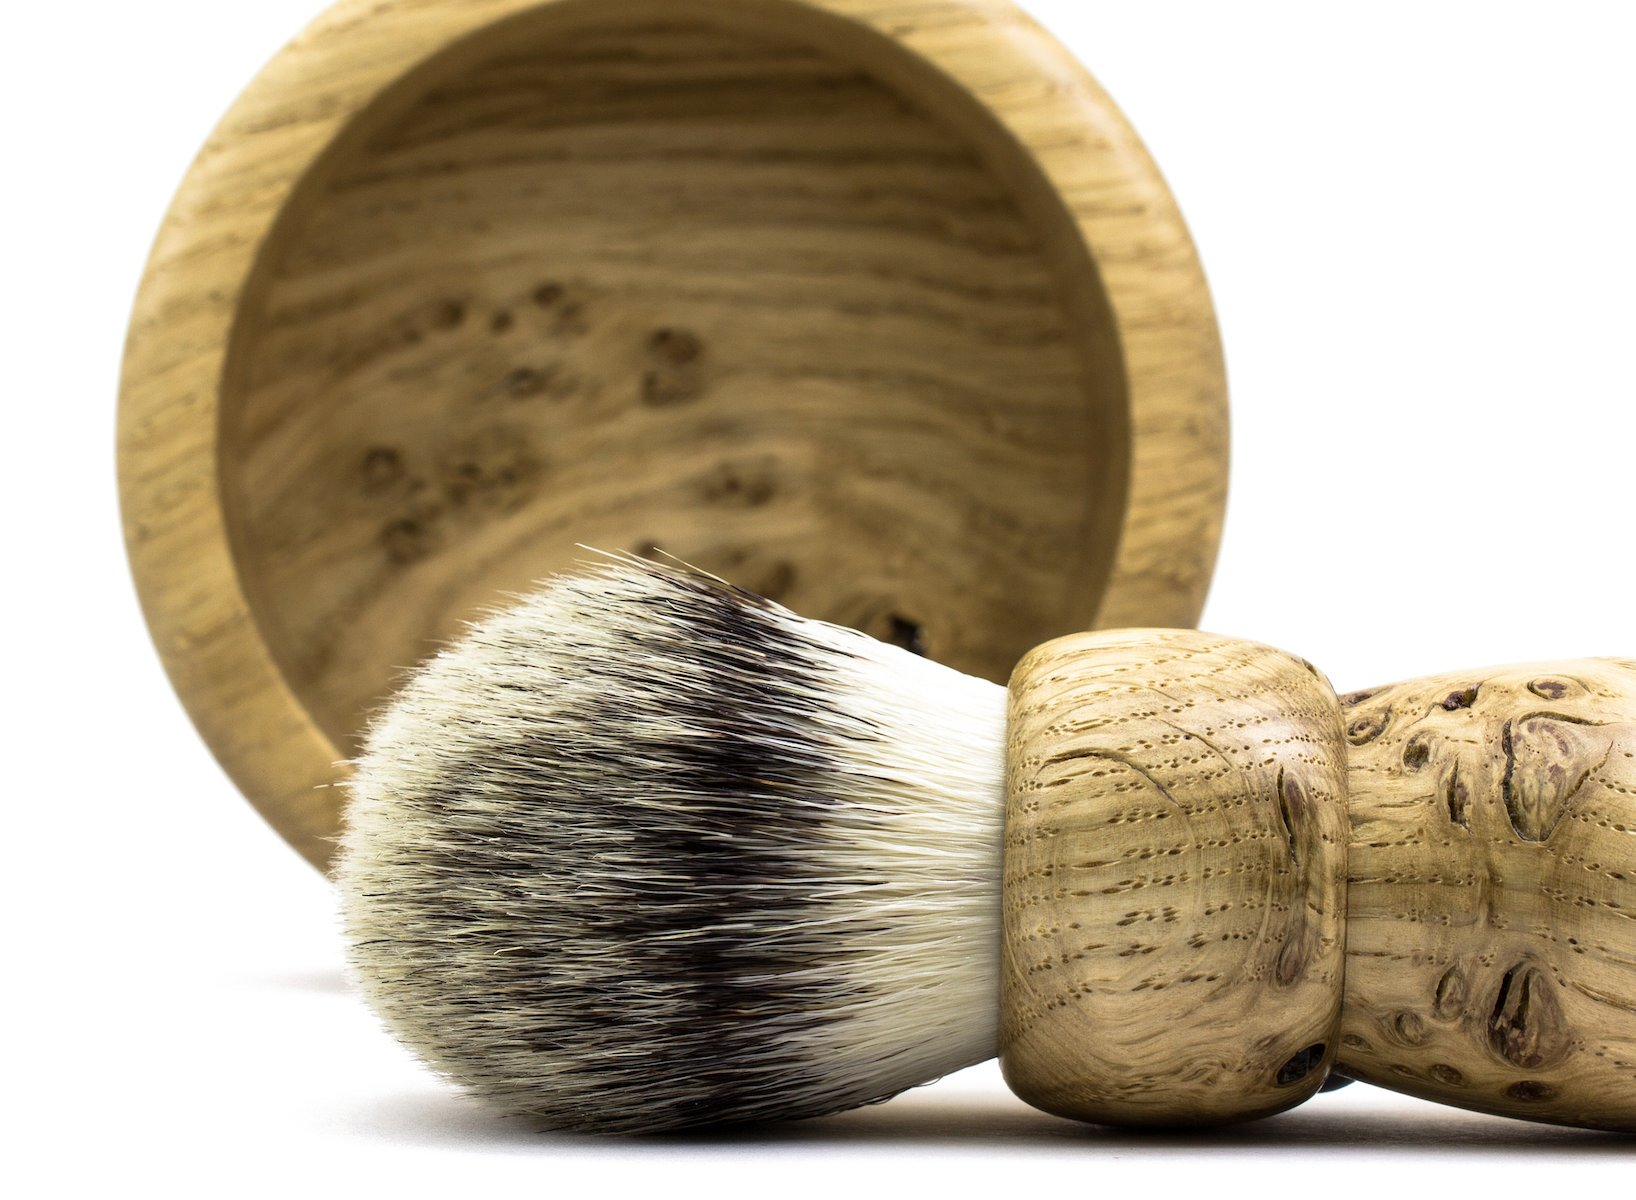 British oak, hand made in Leicester. Vegan friendly bristles.